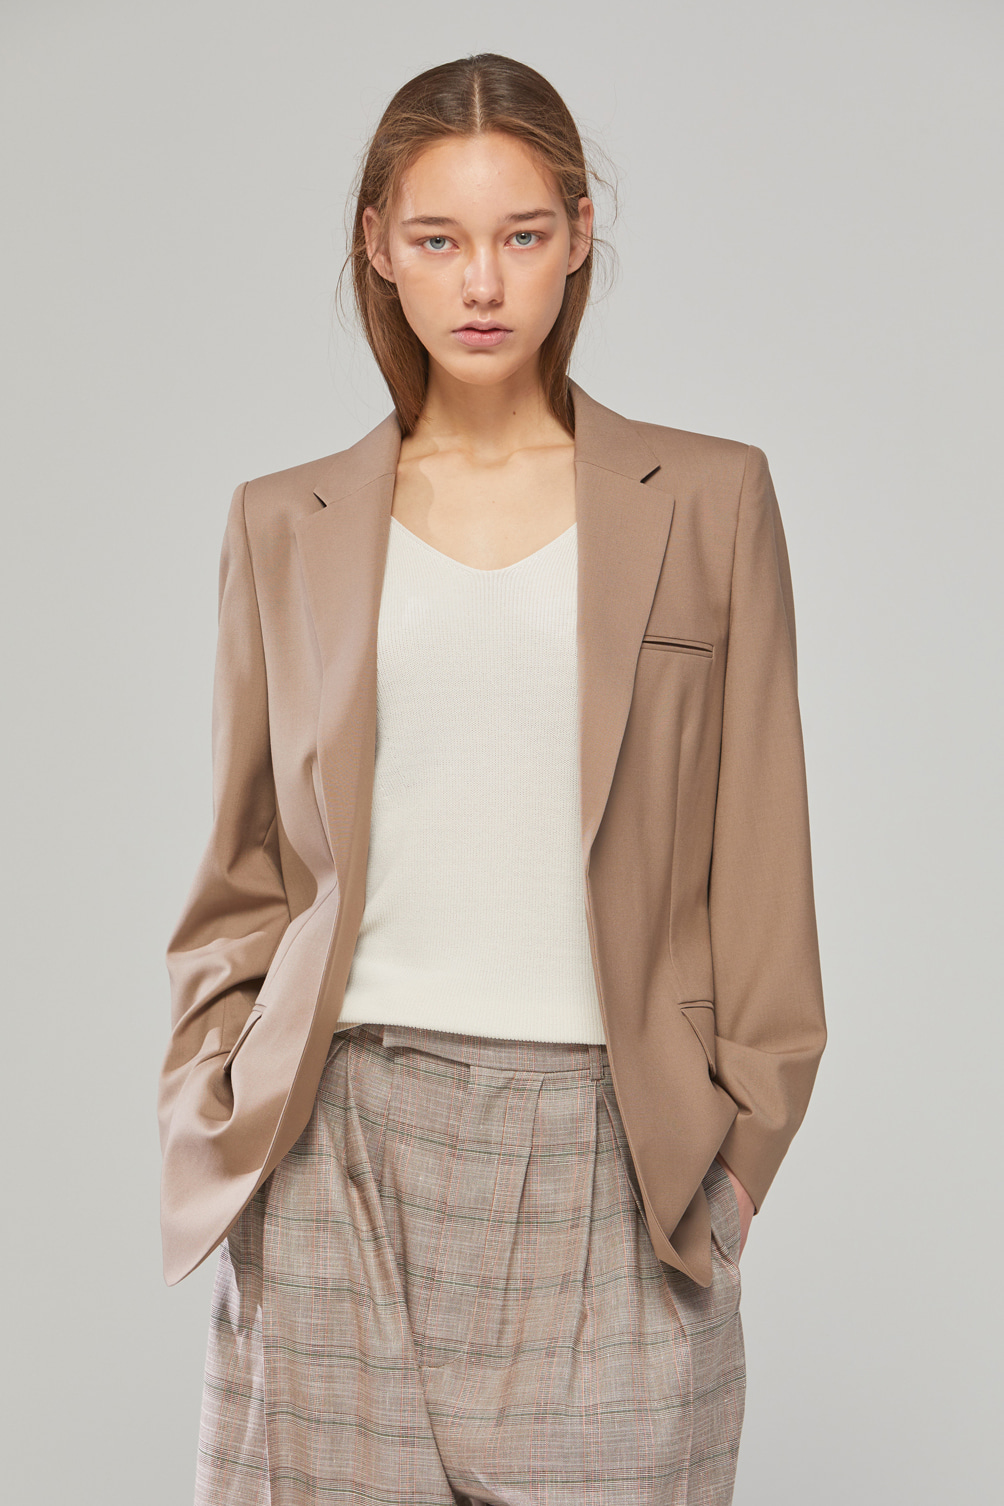 DEMERE LIGHT-WOOL BELTED JACKET (DARK BEIGE)